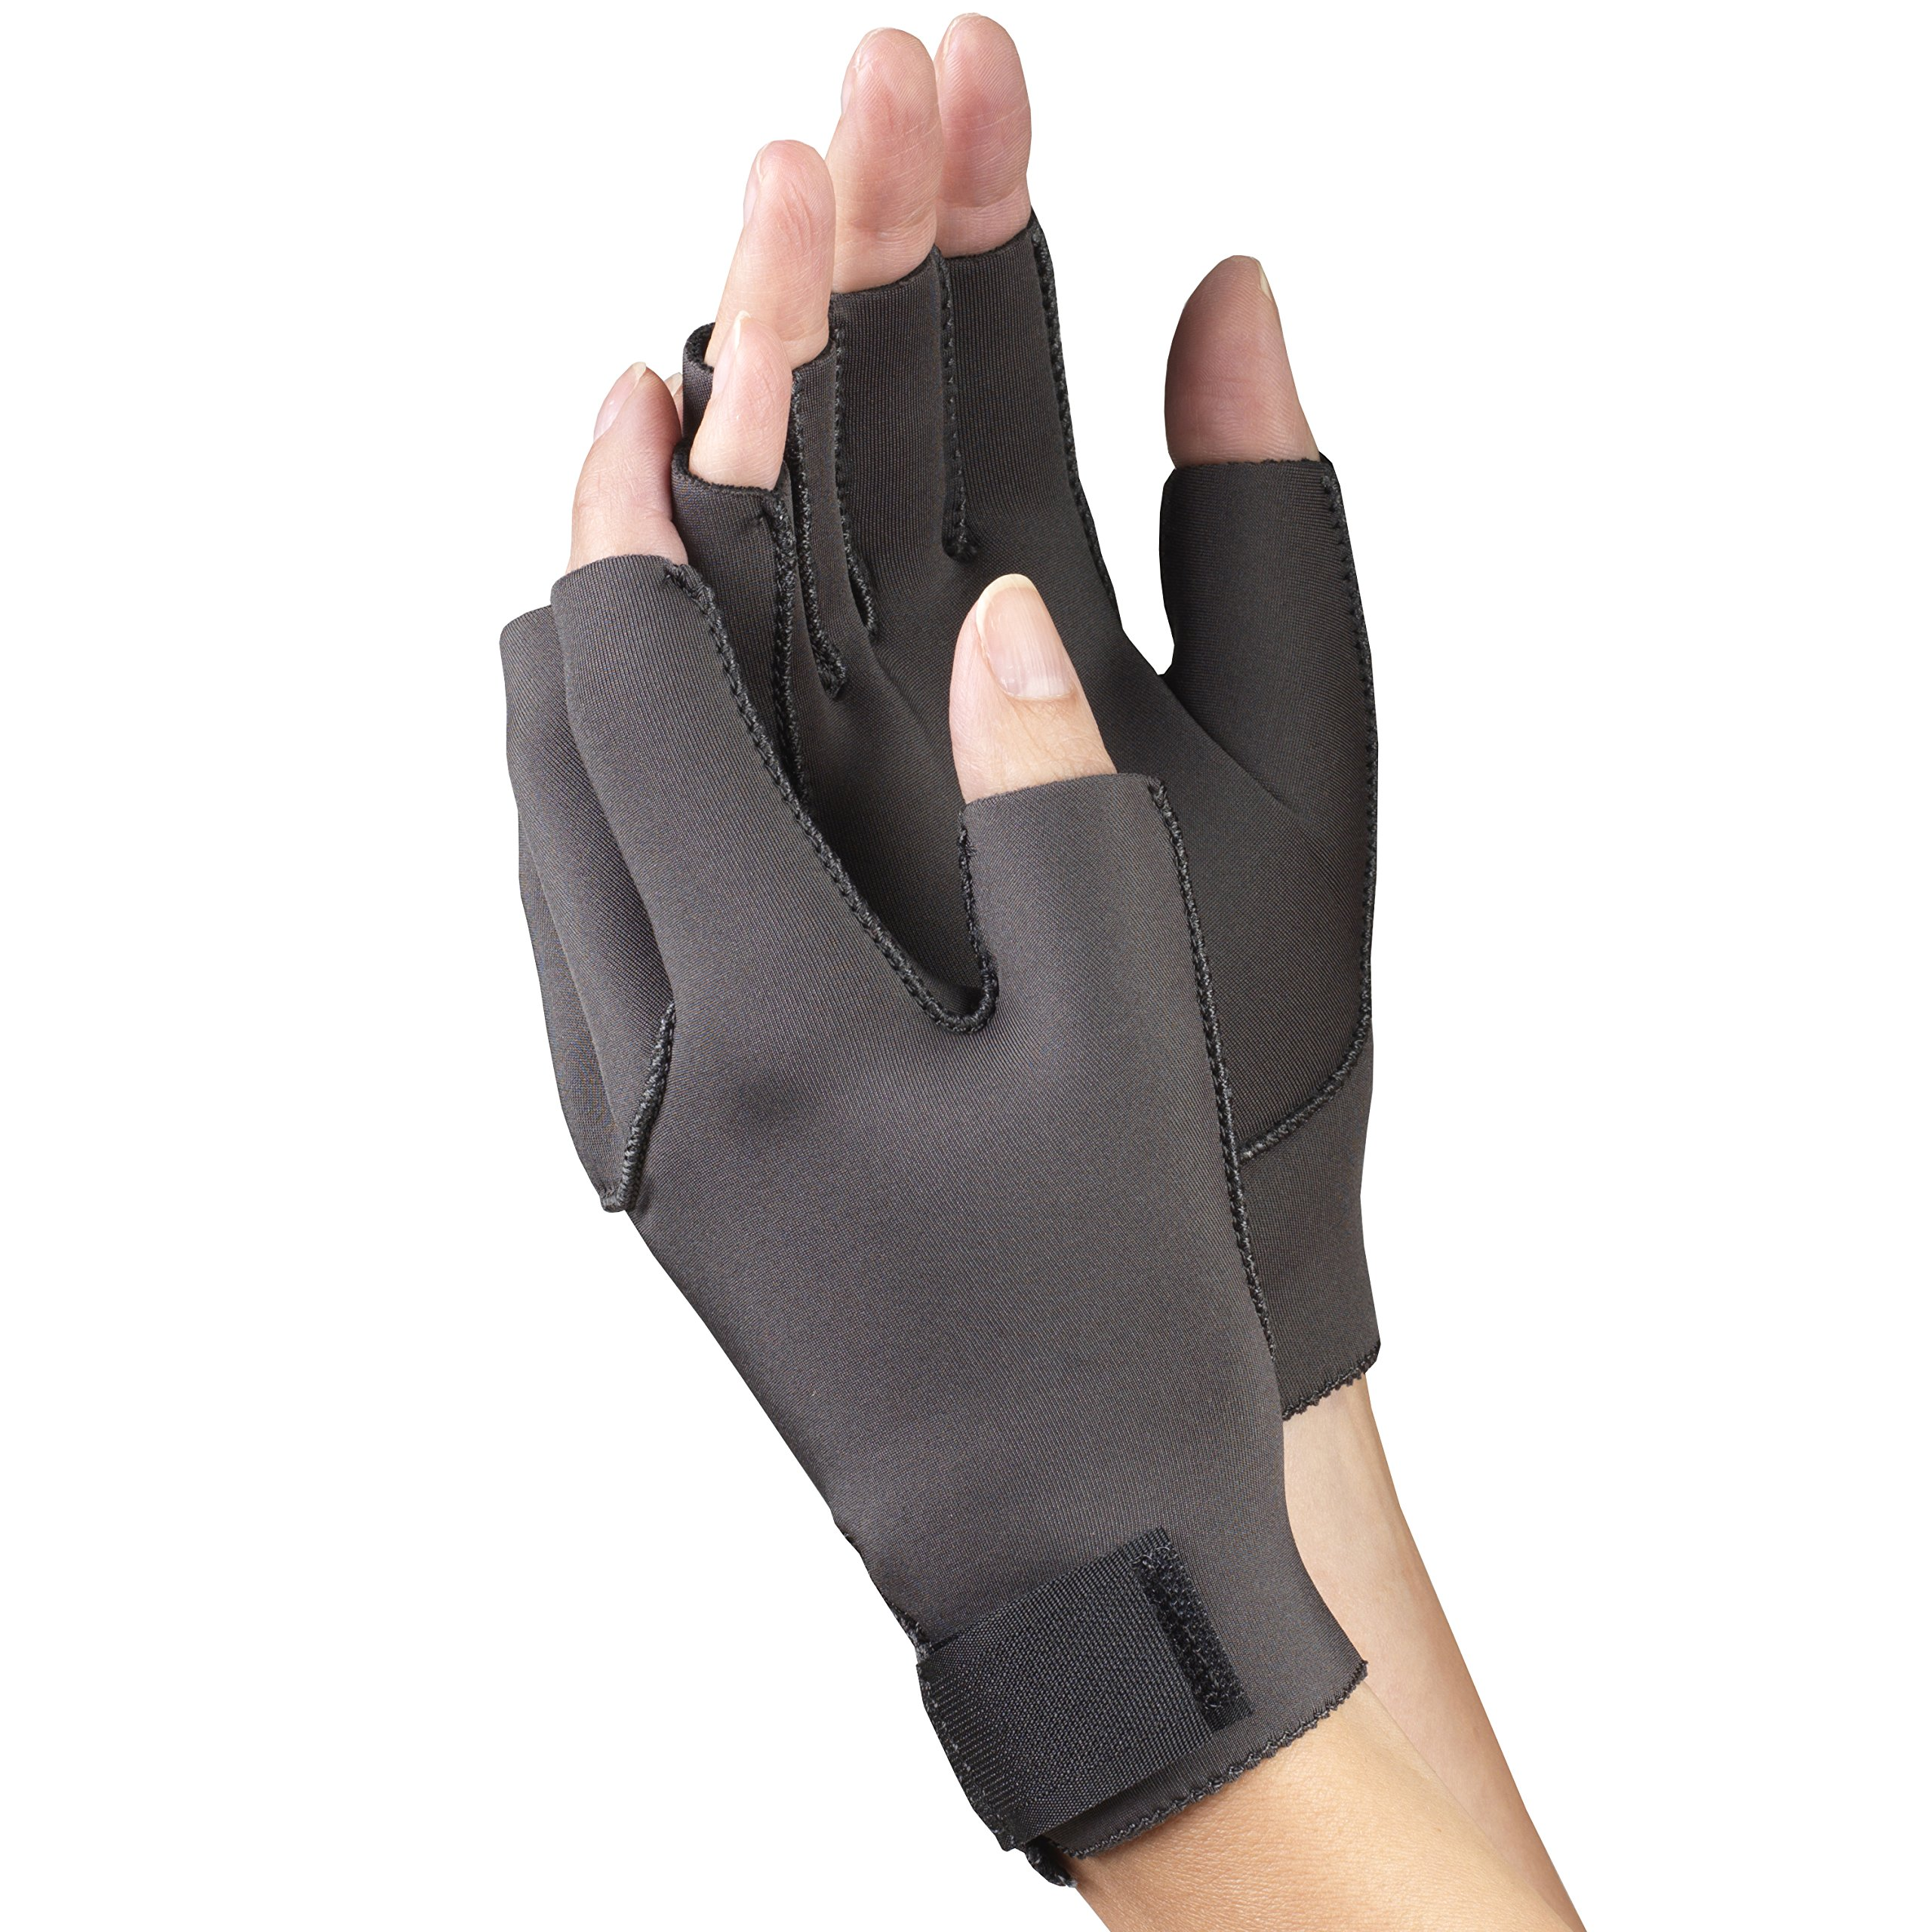 OTC Premium Support Arthritis Gloves, Black, Medium